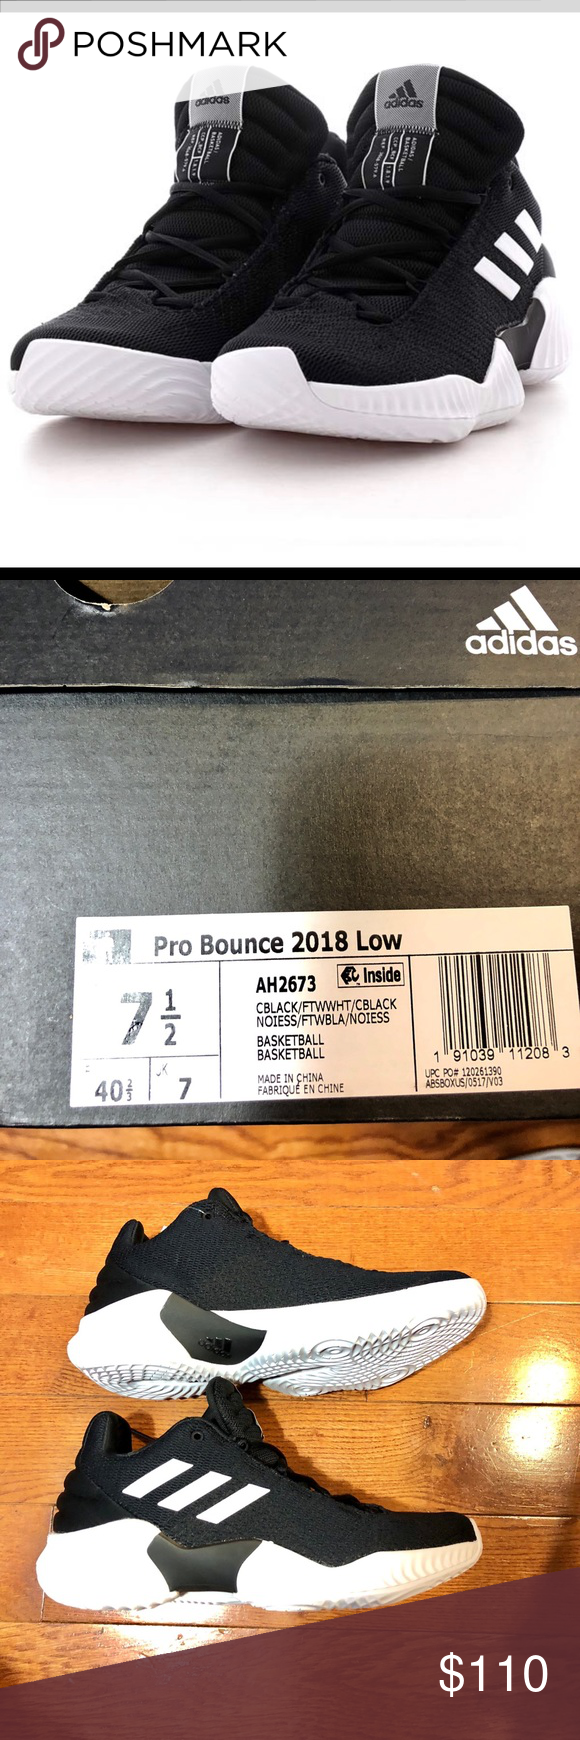 a07ea4c3efcf1 ADIDAS PRO BOUNCE 2018 LOW SIZE 7.5 BLACK 🔹AUTHENTIC 🔹NEW IN BOX 🔹NO